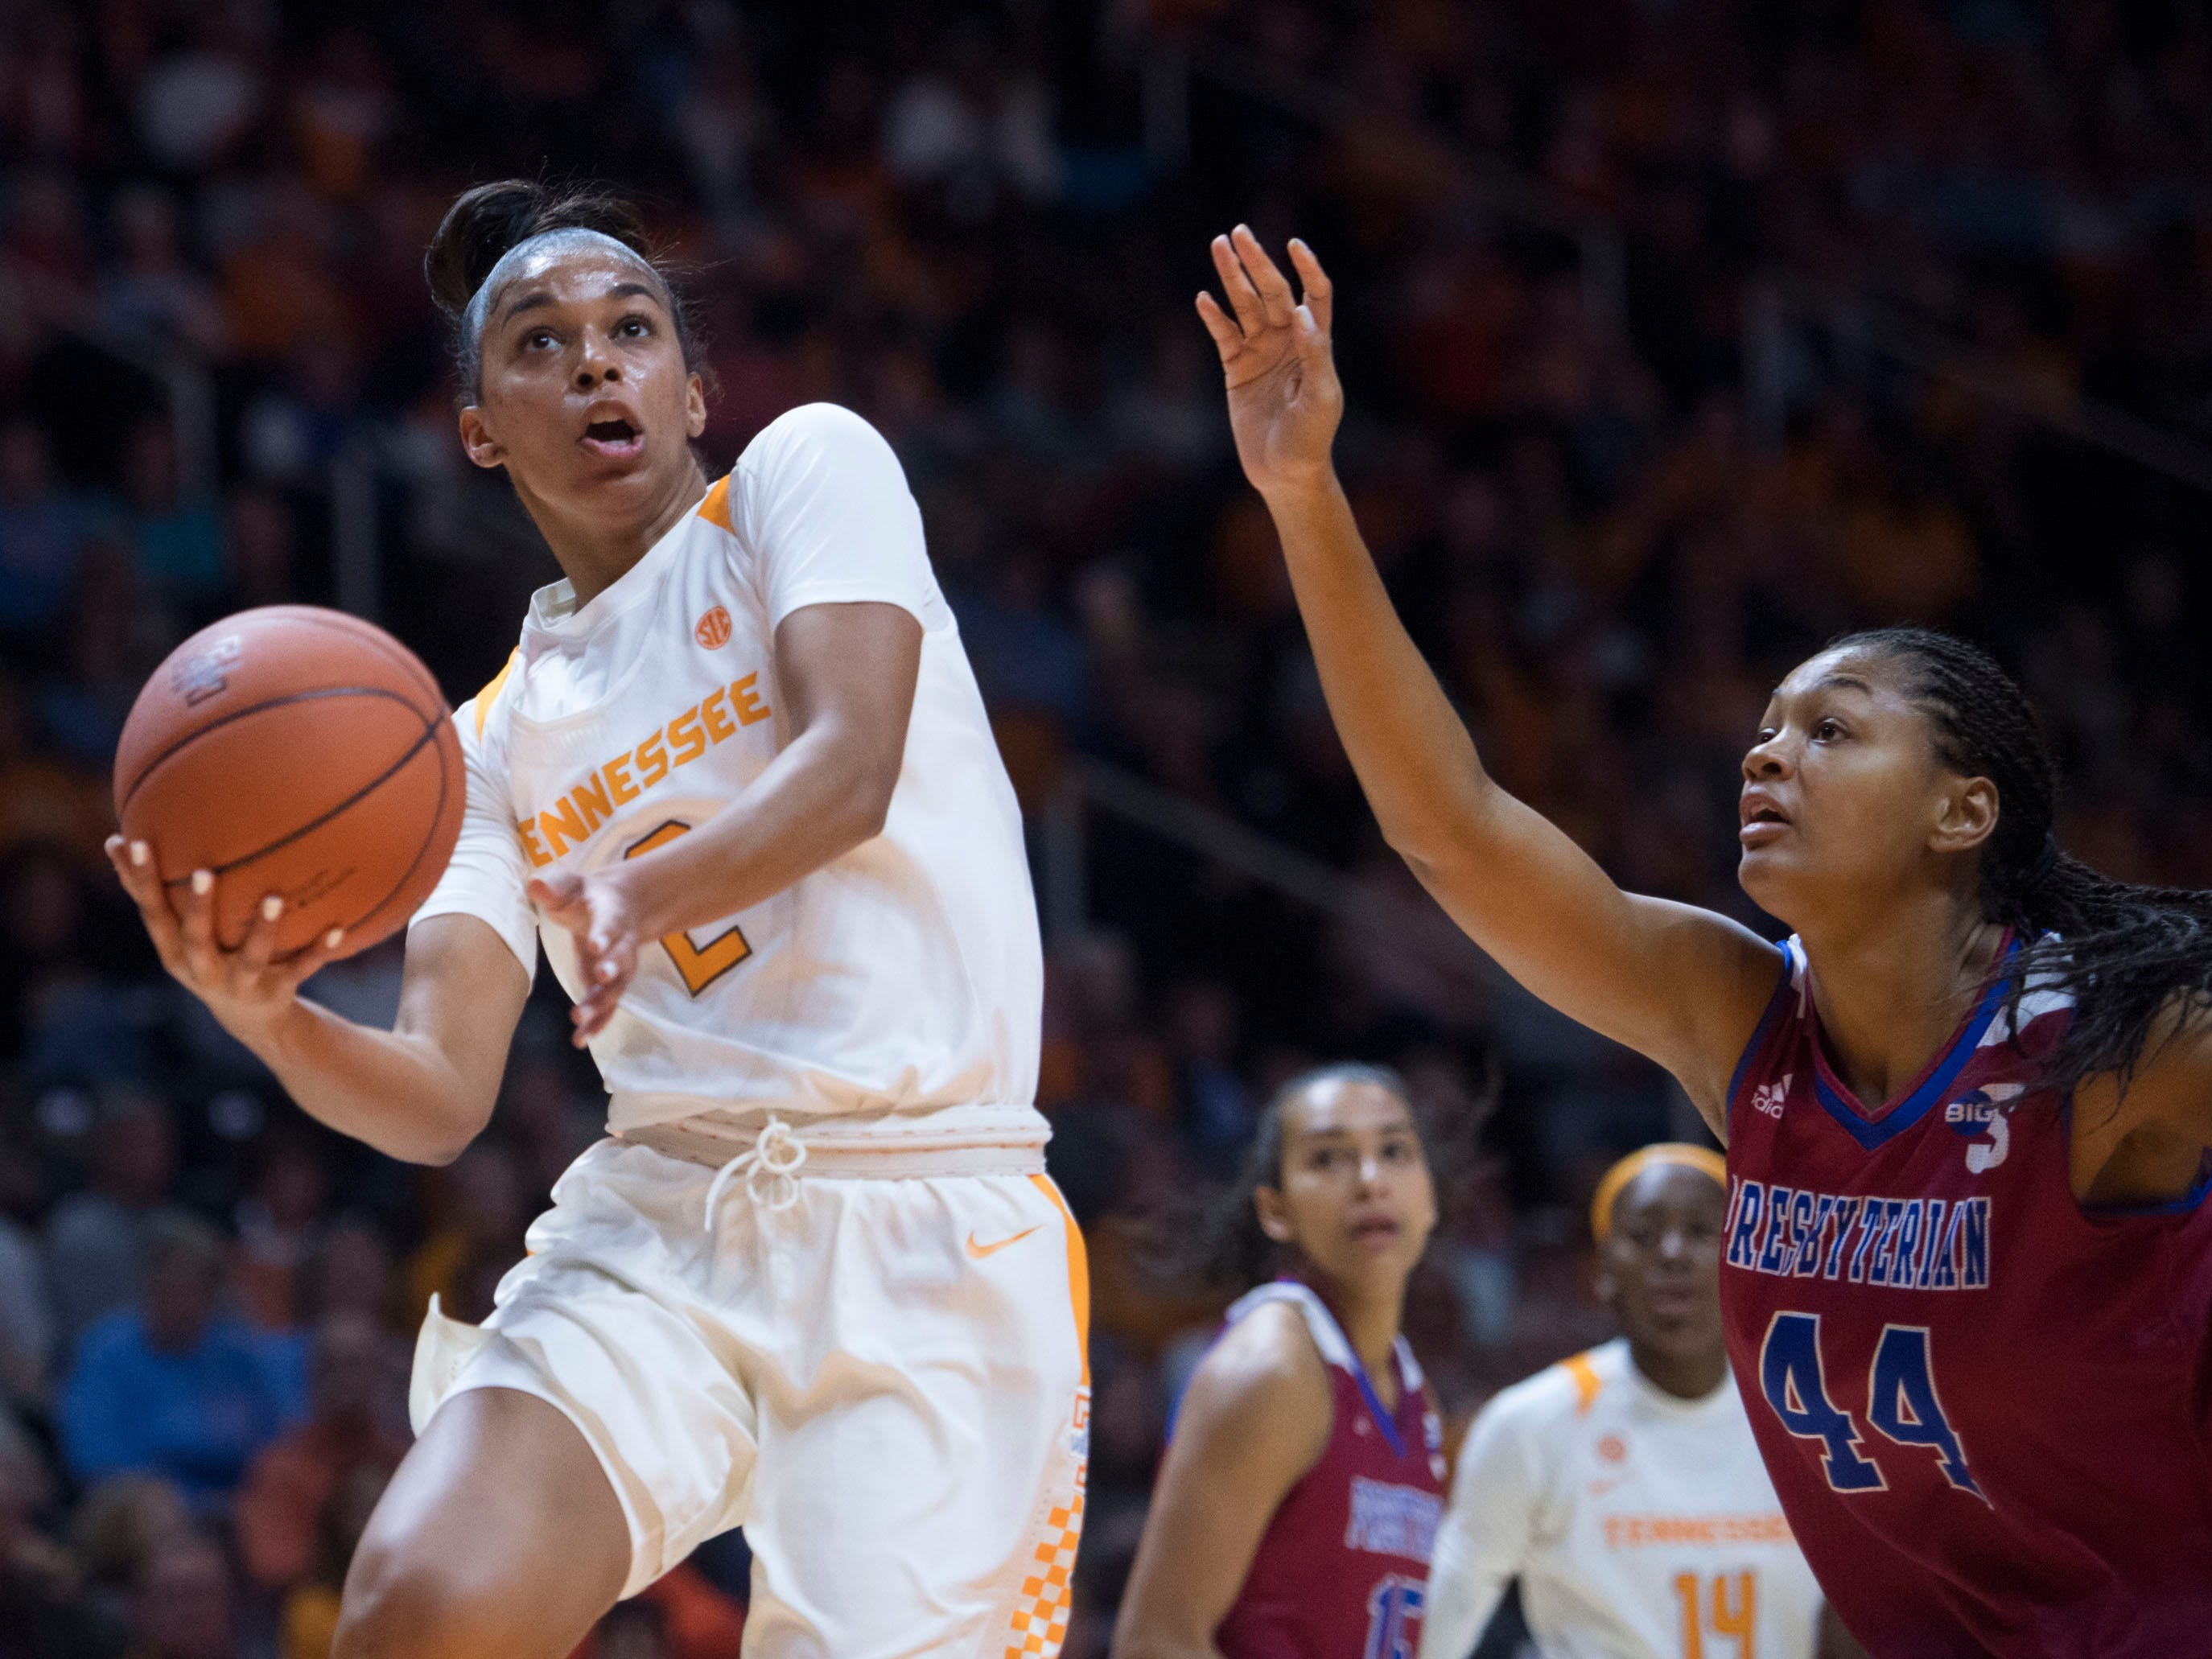 Tennessee's Evina Westbrook (2) makes a shot while defended by Presbyterian's Ericka Blackwell-Boyden (44) on Sunday, November 11, 2018.